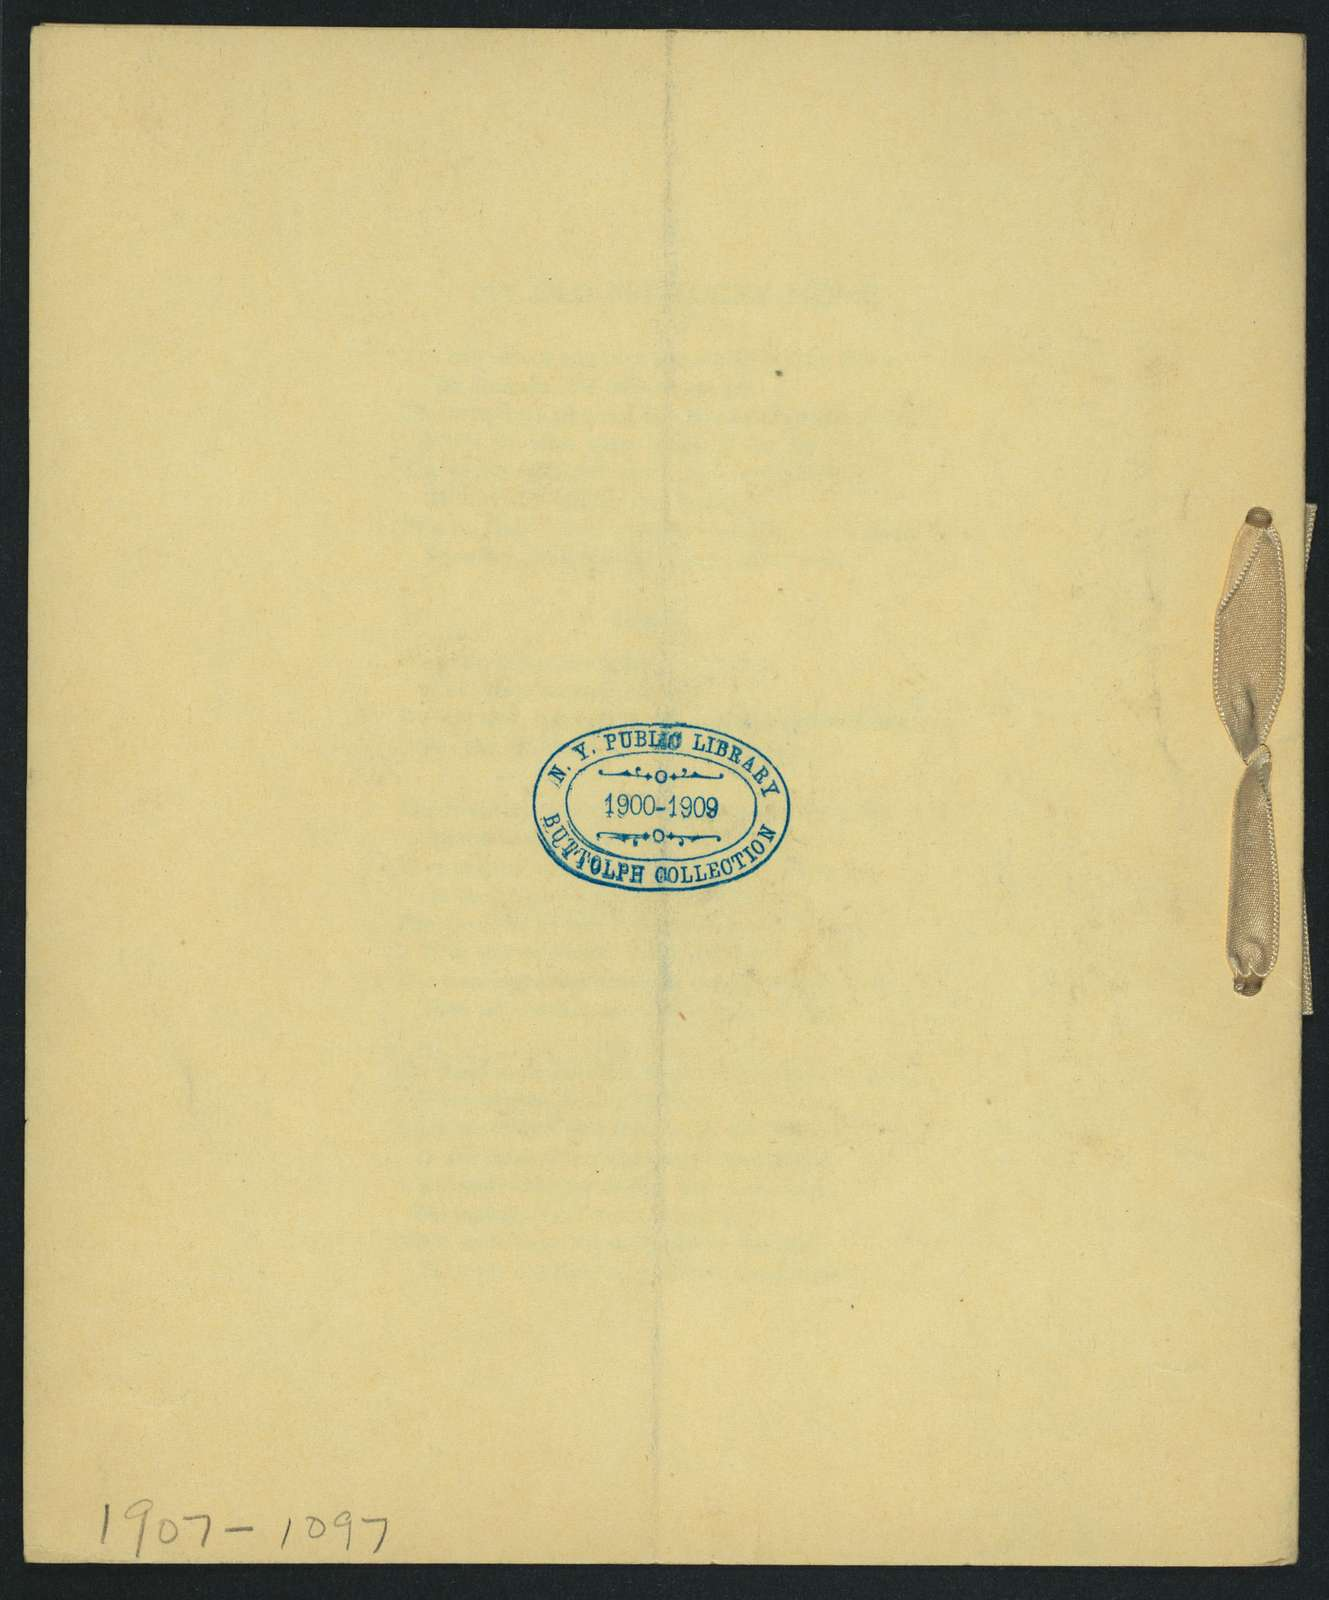 """FOURTH ANNUAL BANQUET IN HONOR OF SUPREME COURT JUSTICE JOHN MARSHALL HARLAN [held by] THE KENTUCKIANS [at] """"HOTEL PLAZA, NEW YORK"""" (HOTEL;)"""